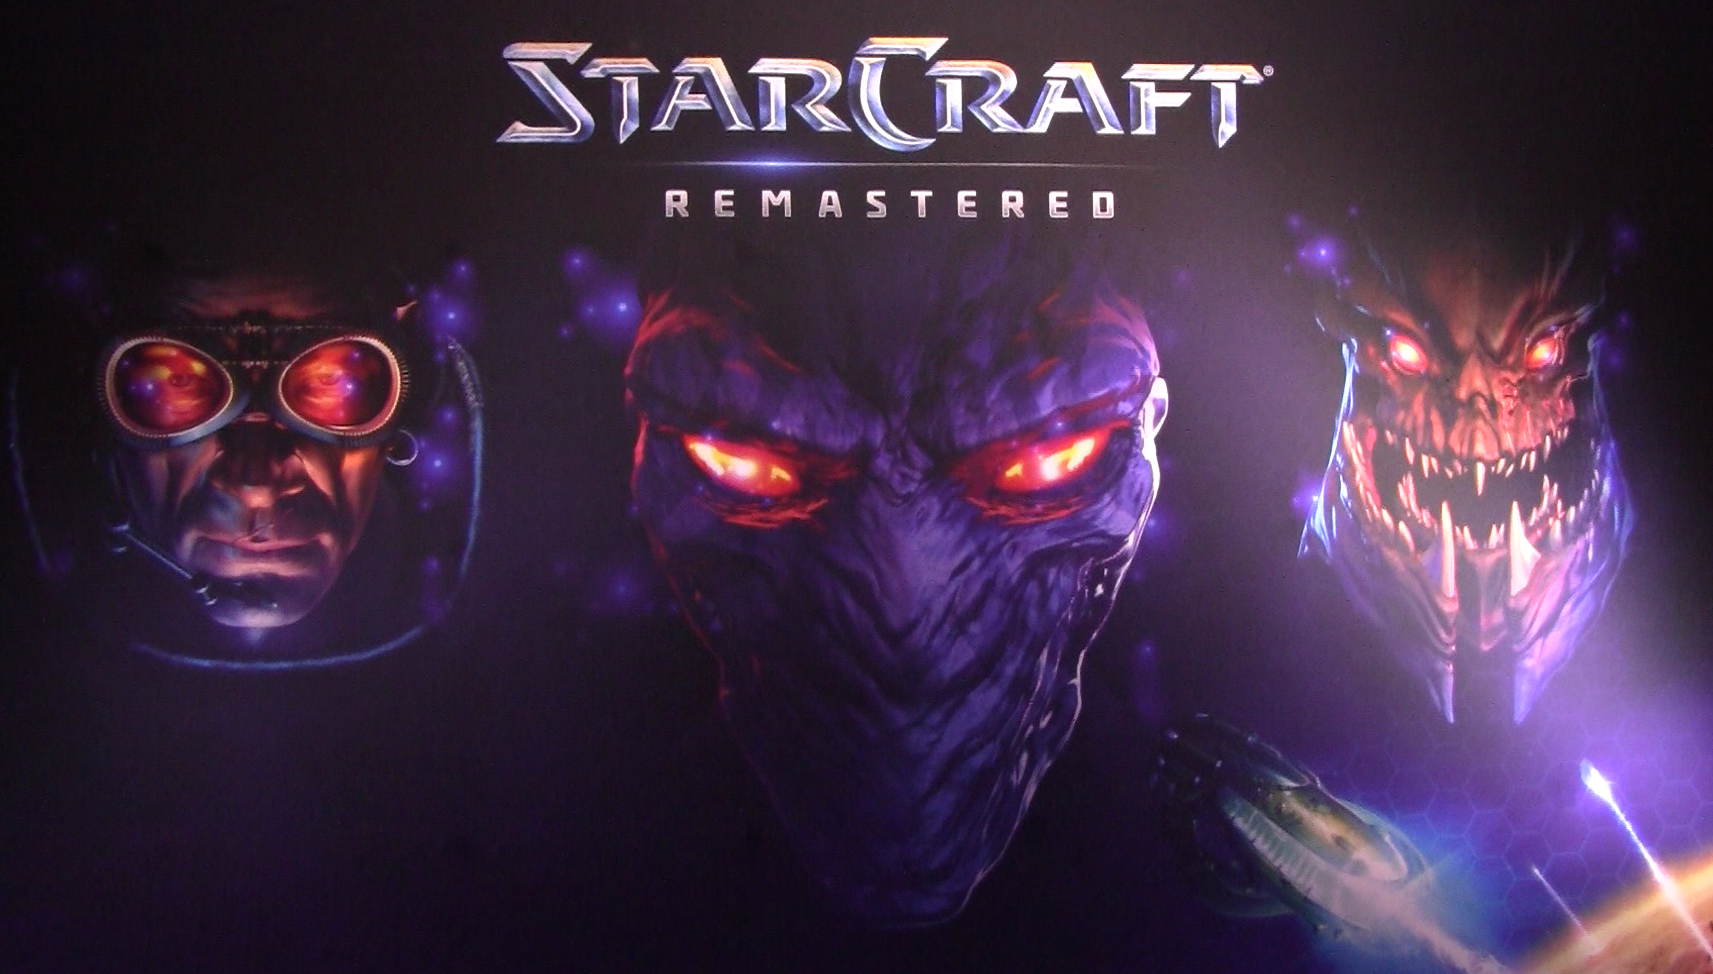 StarCraft Remastered devs unveil price, explain how much is